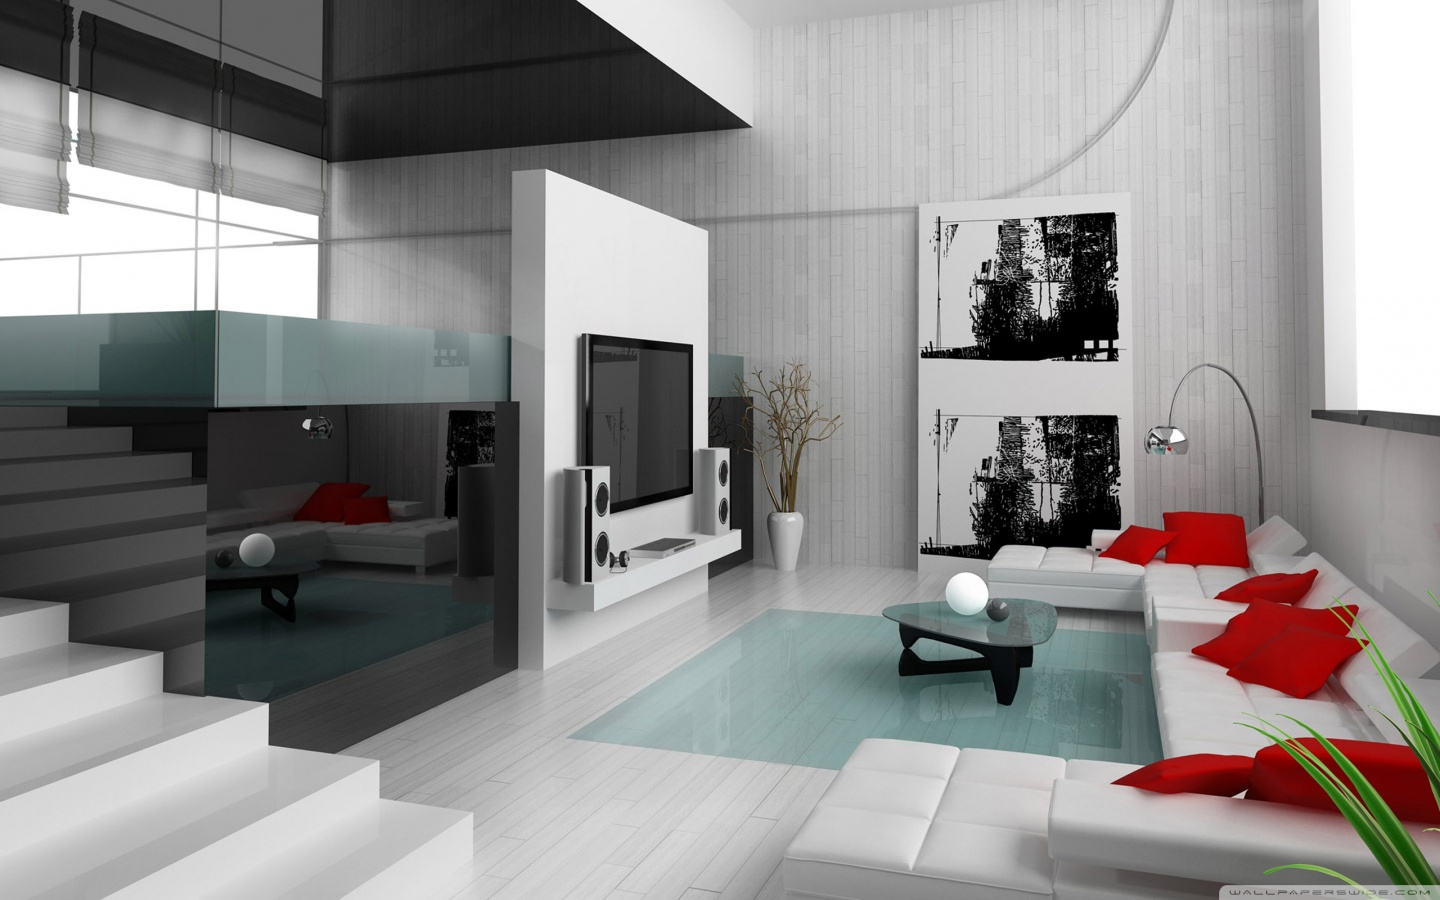 Minimalist interior design imagination art architecture Contemporary interior design